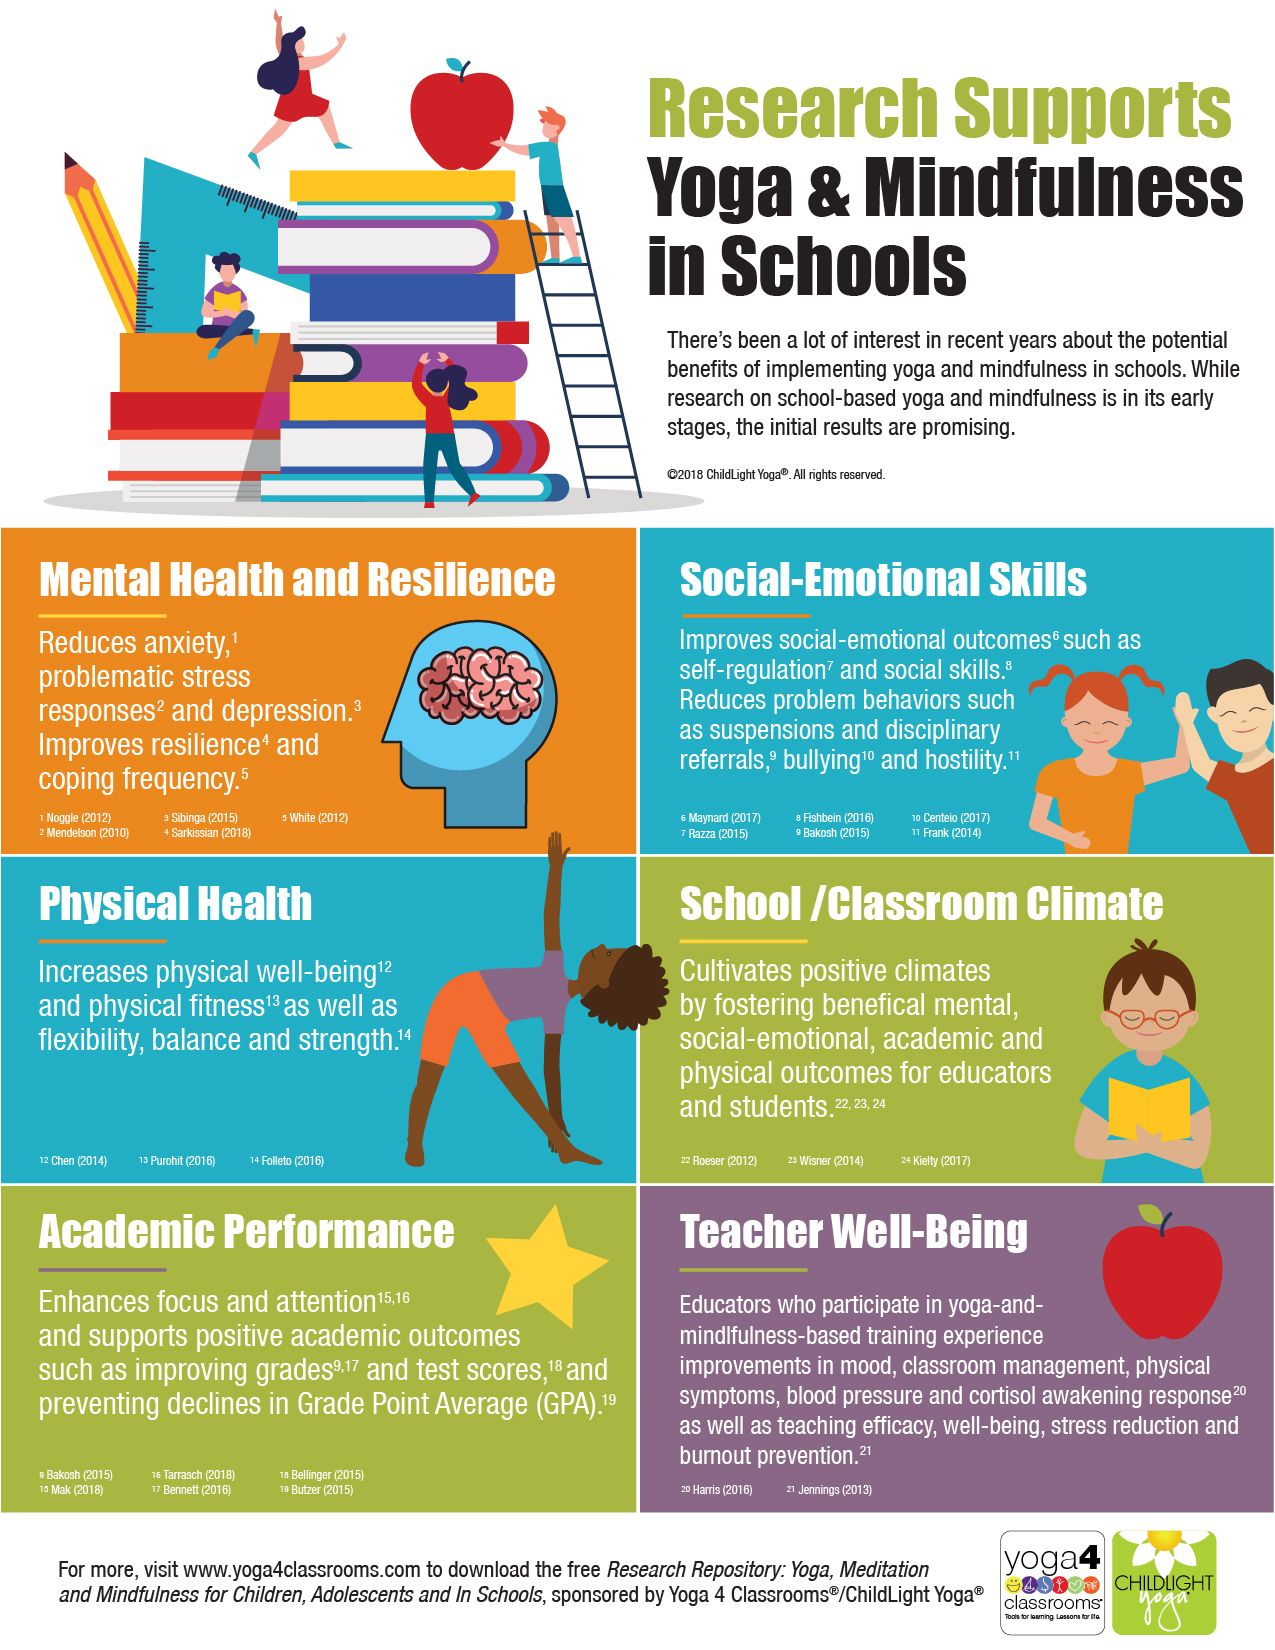 Research Supports Yoga Mindfulness In Schools Infographic